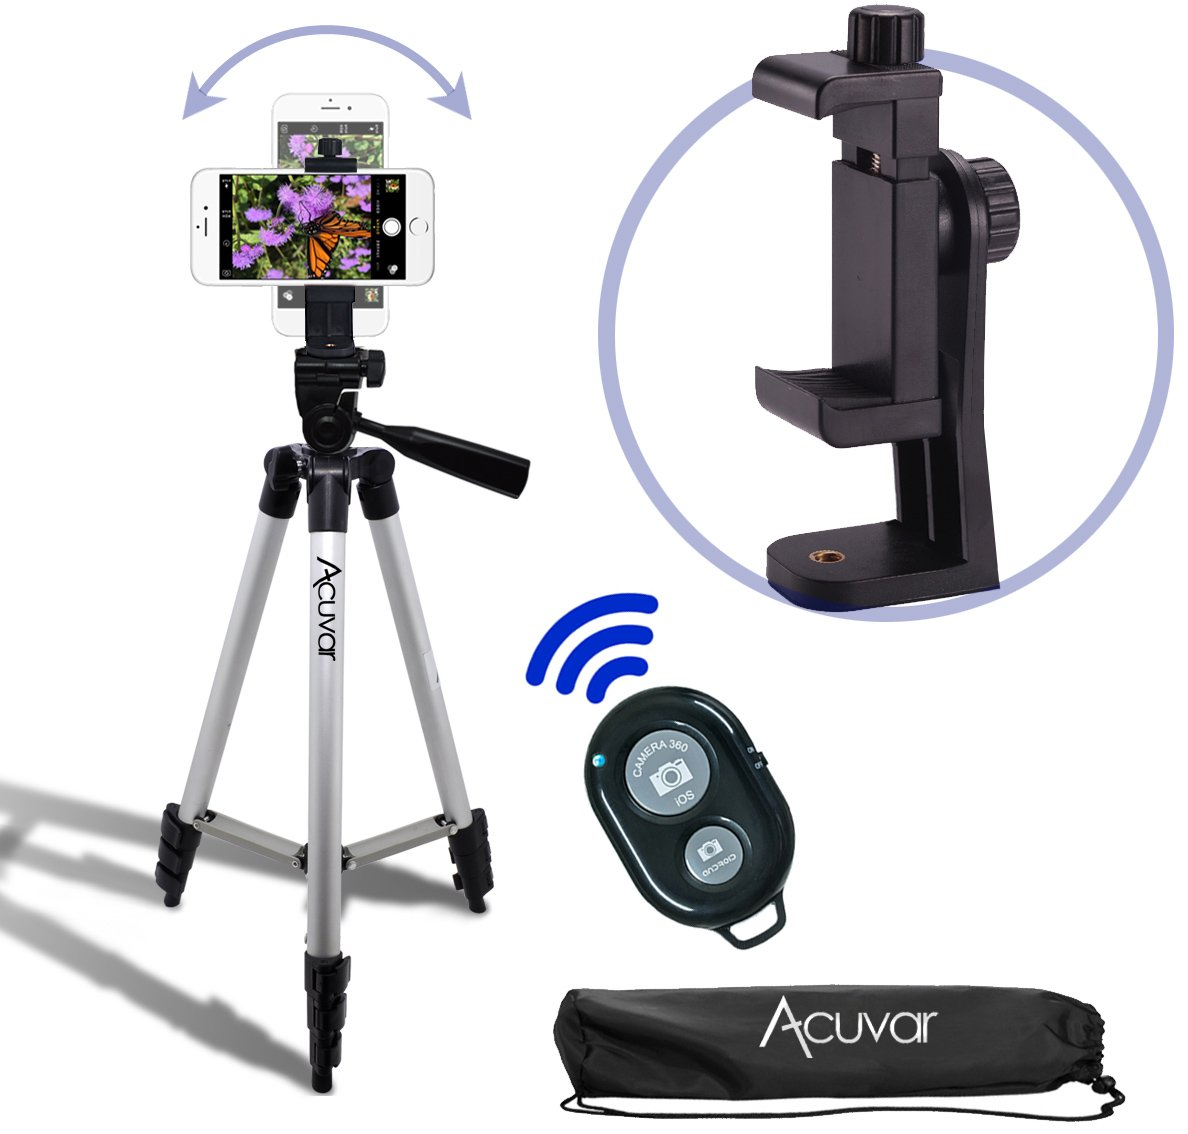 Acuvar 50'' Smartphone/Camera Tripod with Rotating Mount & Wireless Camera Remote. Fits All Smartphones X, 8, 8+, 7, 7 Plus, Android Note 9, S9 etc.